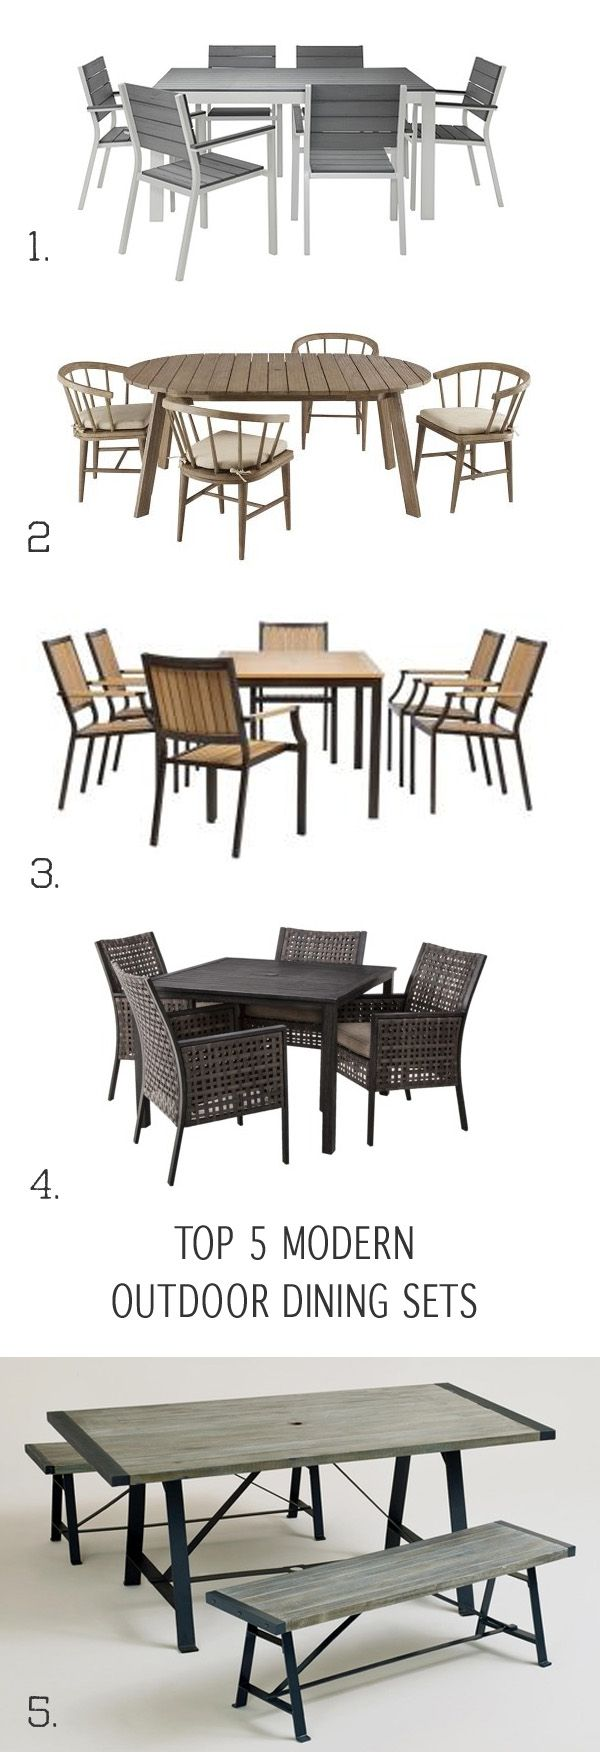 Top 5 Modern Outdoor Dining Sets that wont break the bank.